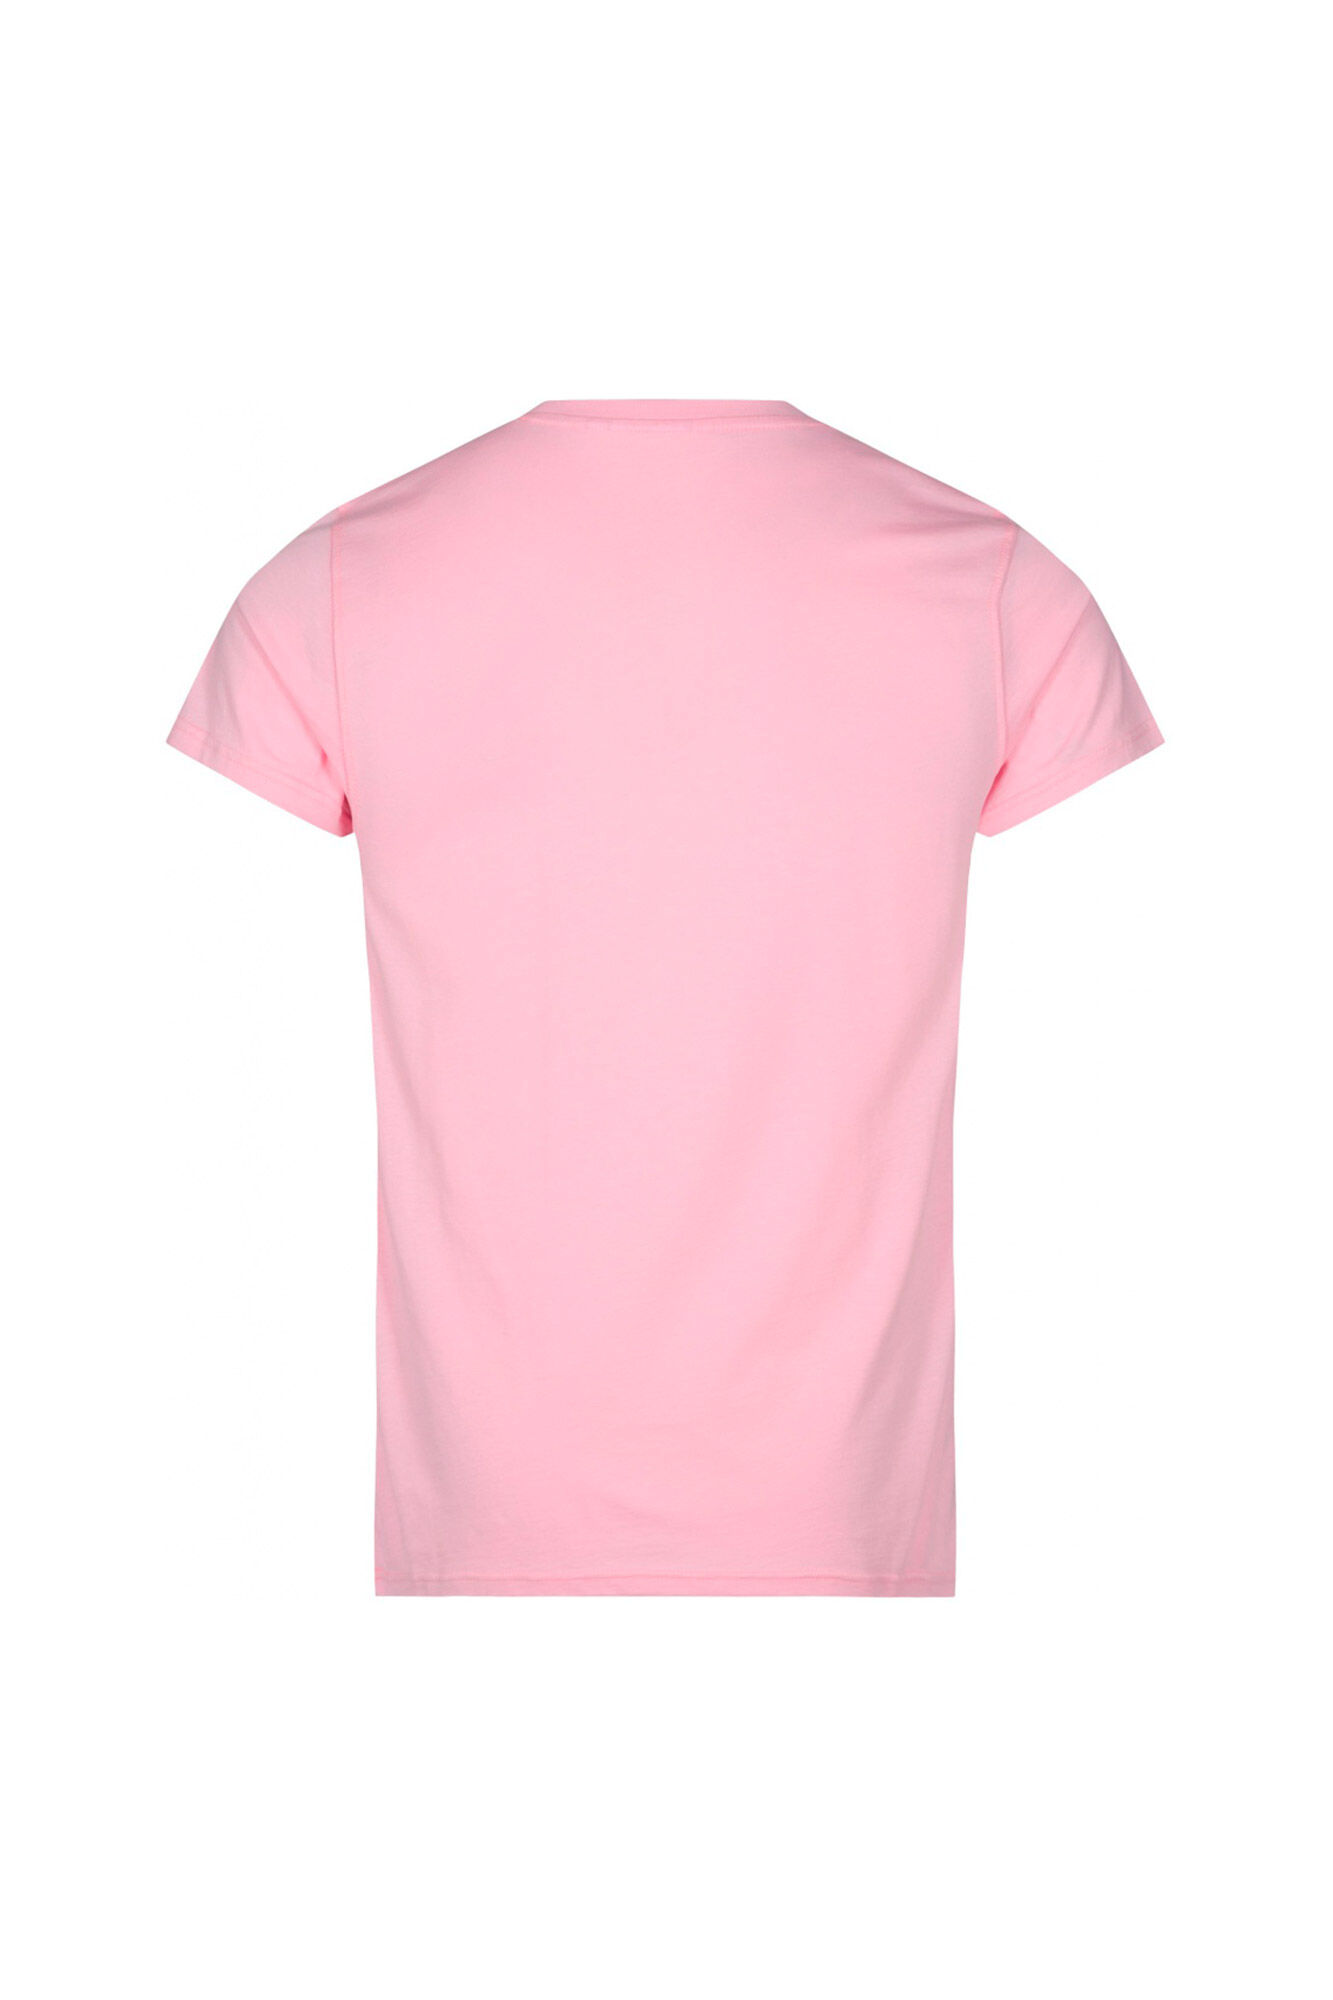 The t-shirt FA900012, LIGHT PINK